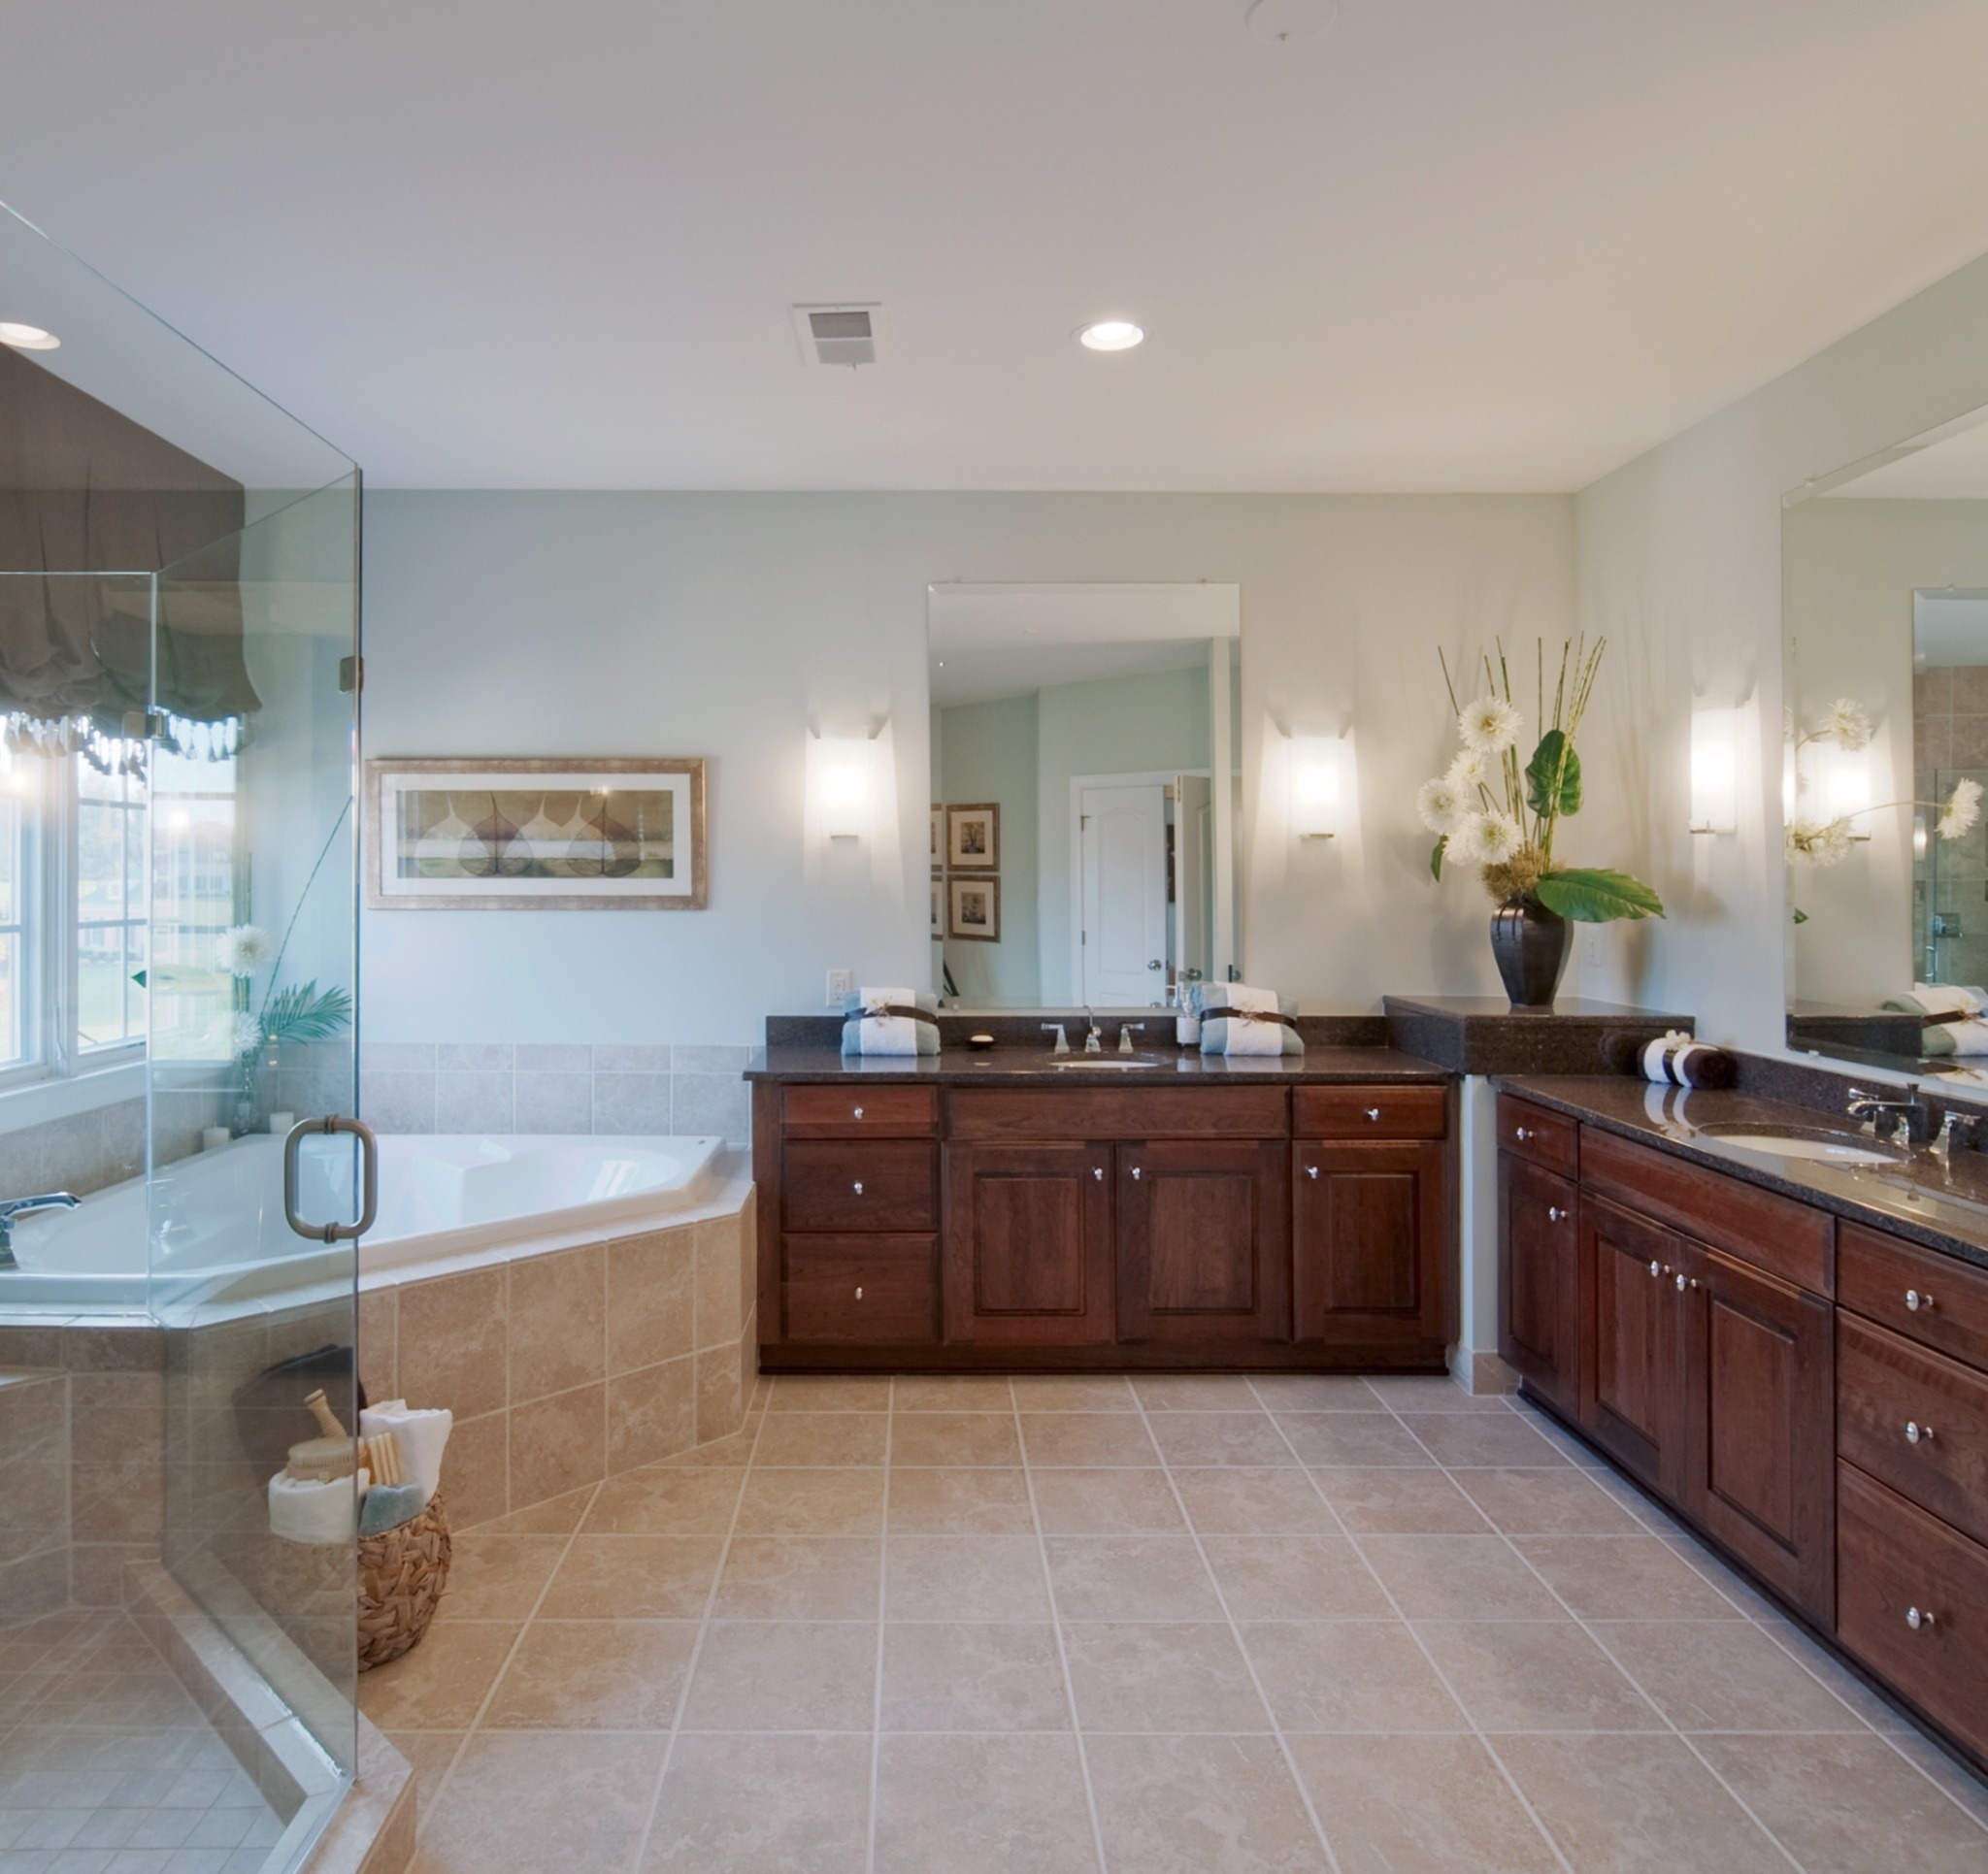 Grovemont Winthrop - Owner's Bath